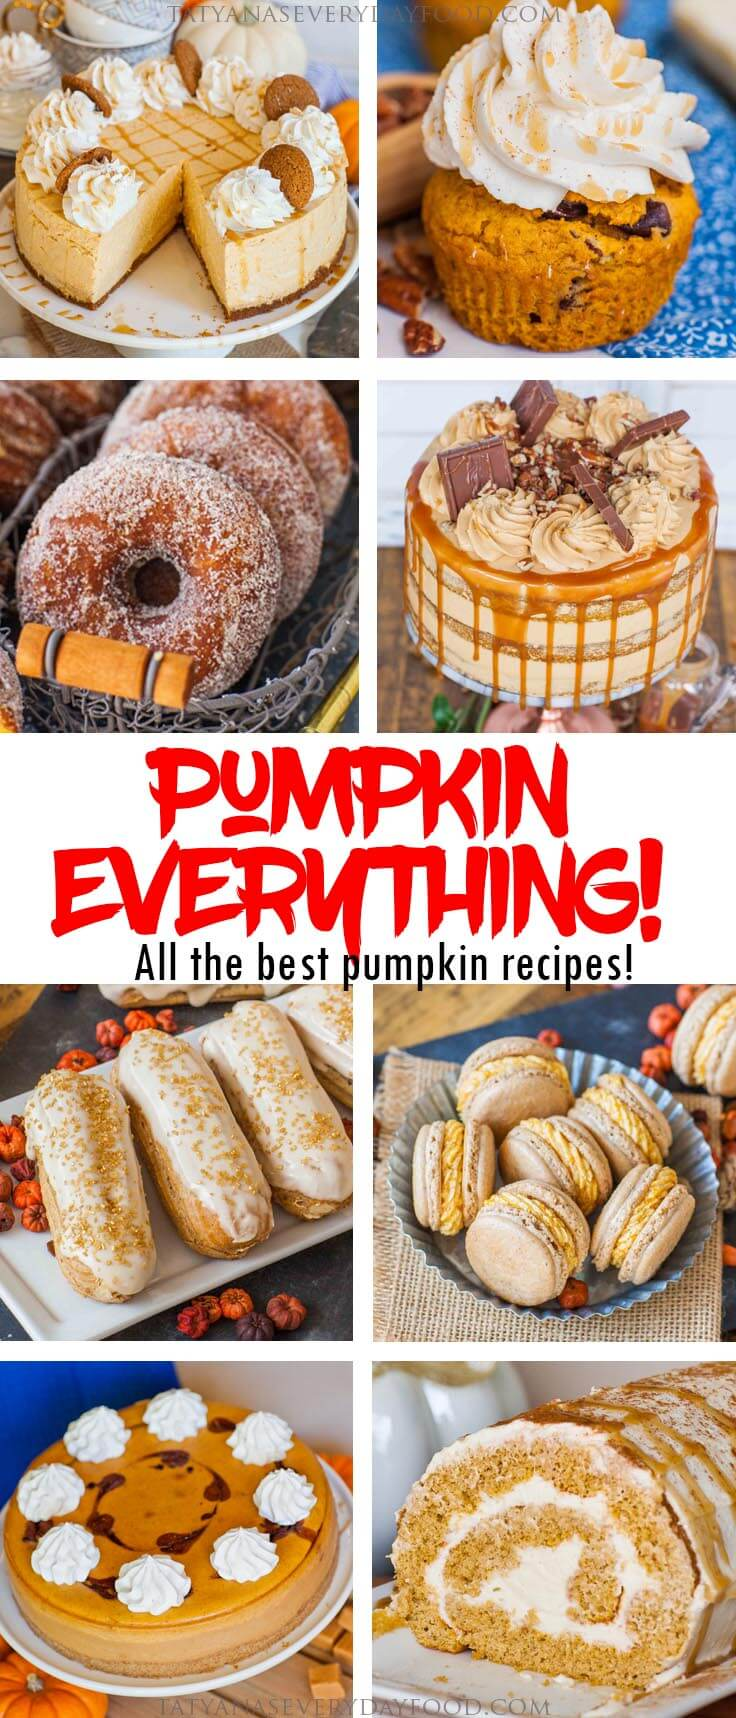 All the Best Pumpkin Recipes! - Tatyanas Everyday Food